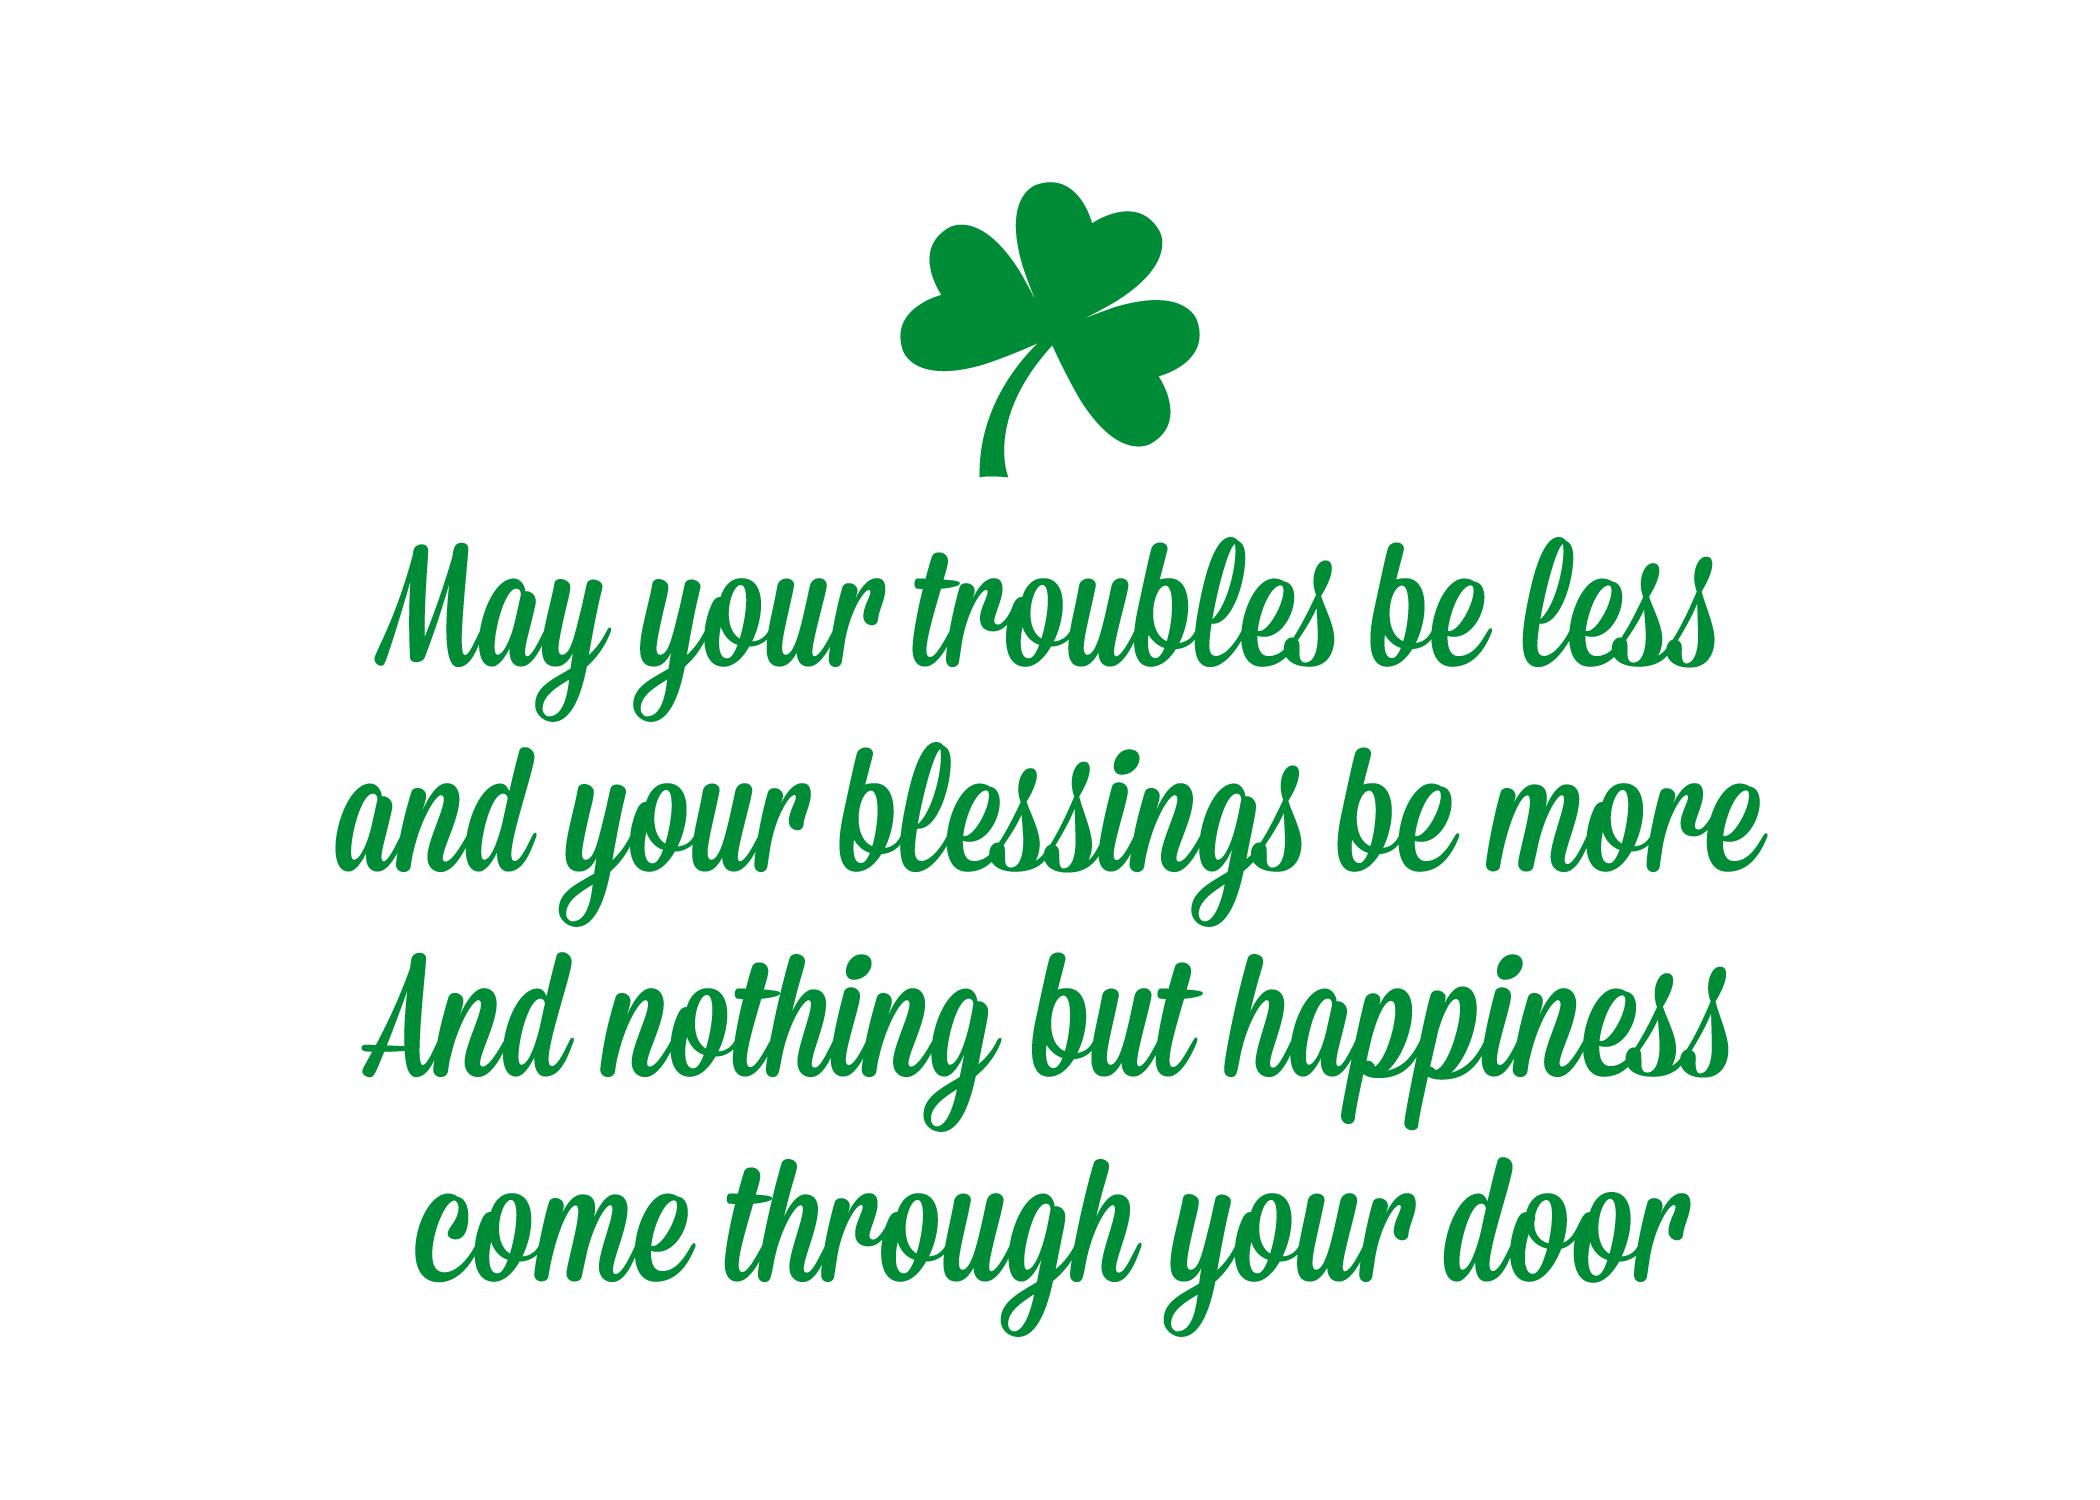 St Patricks Day Quotes Blessings